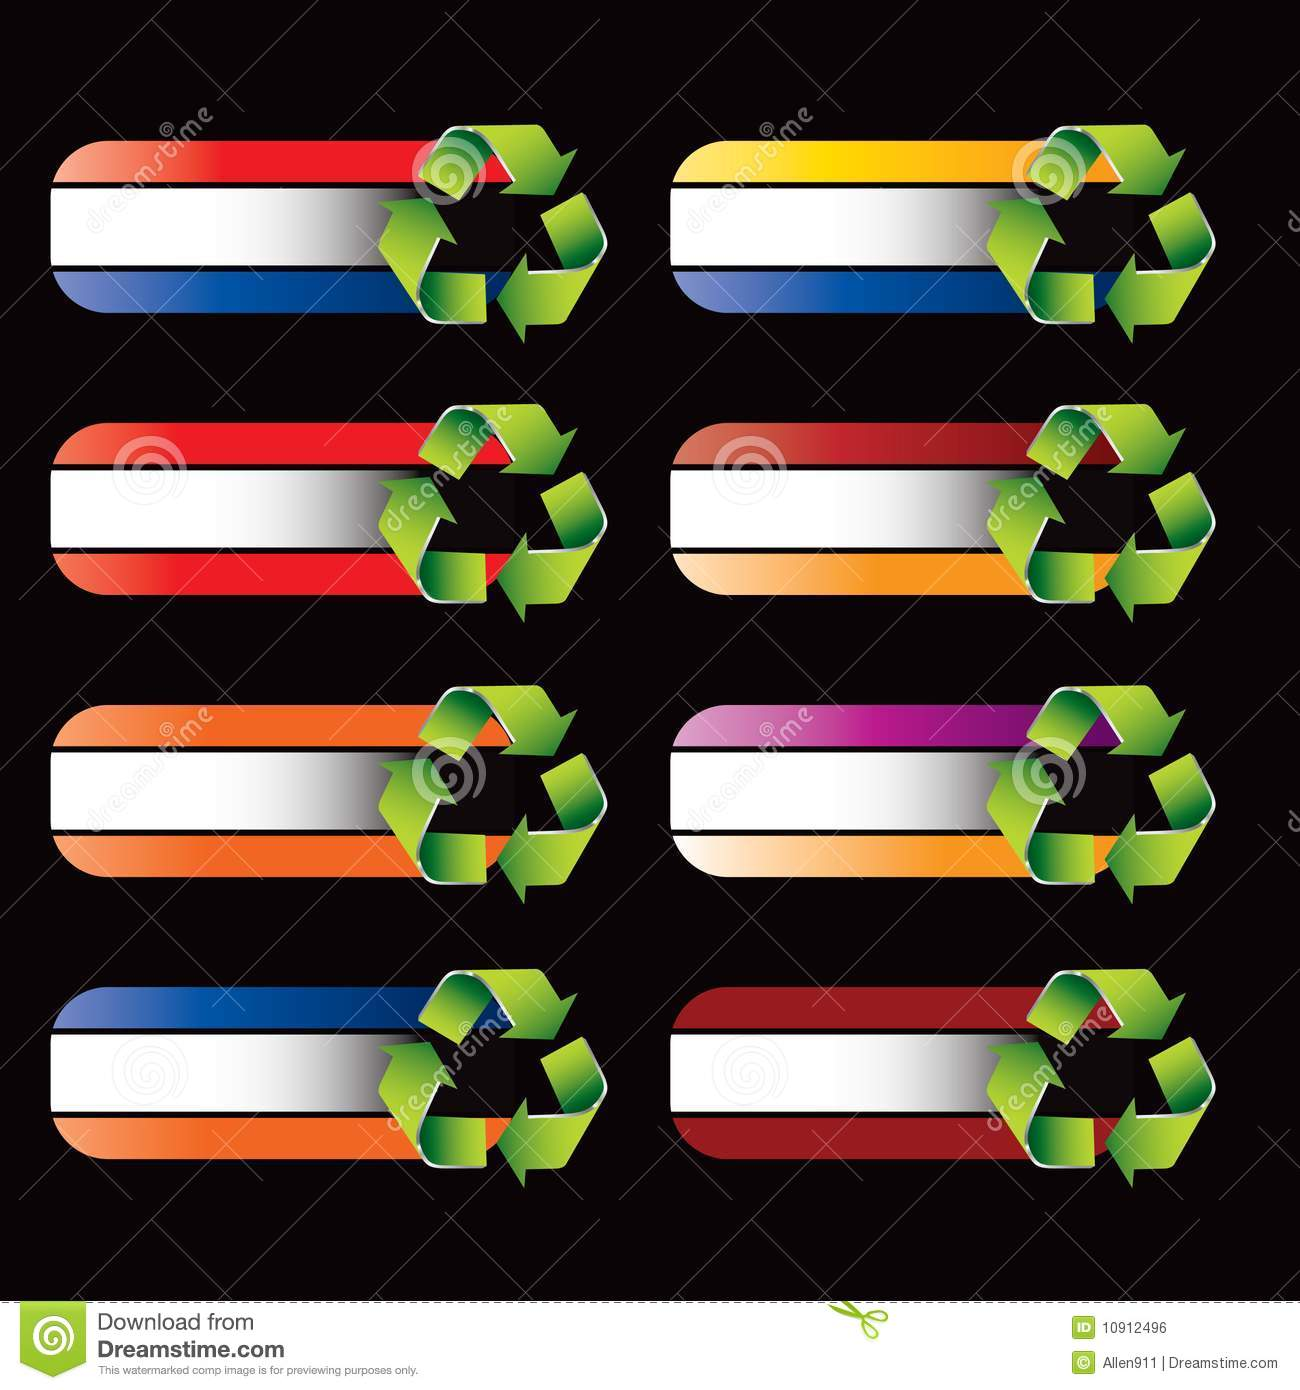 Recycle Symbol On Specialized Banners Stock Vector Illustration Of